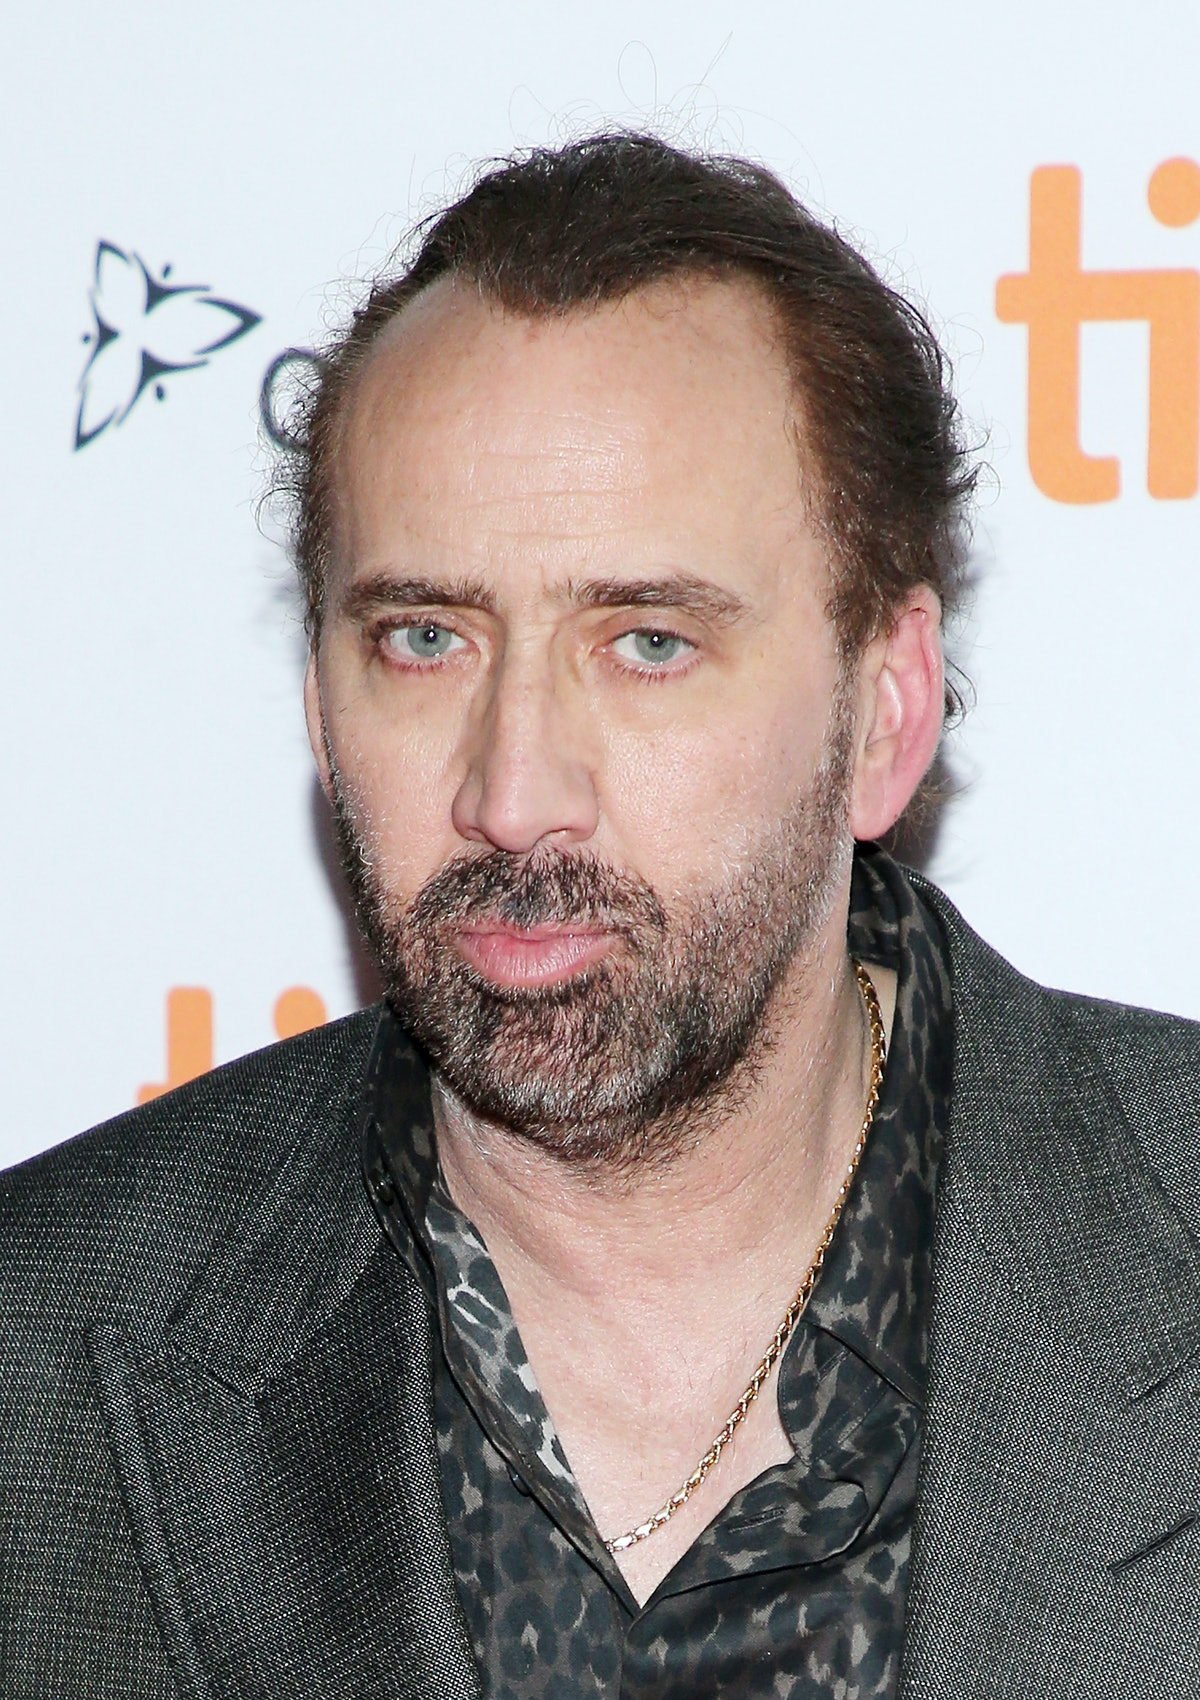 Nicolas Cage named one of the most ridiculous (bad) Capricorn celebrities.